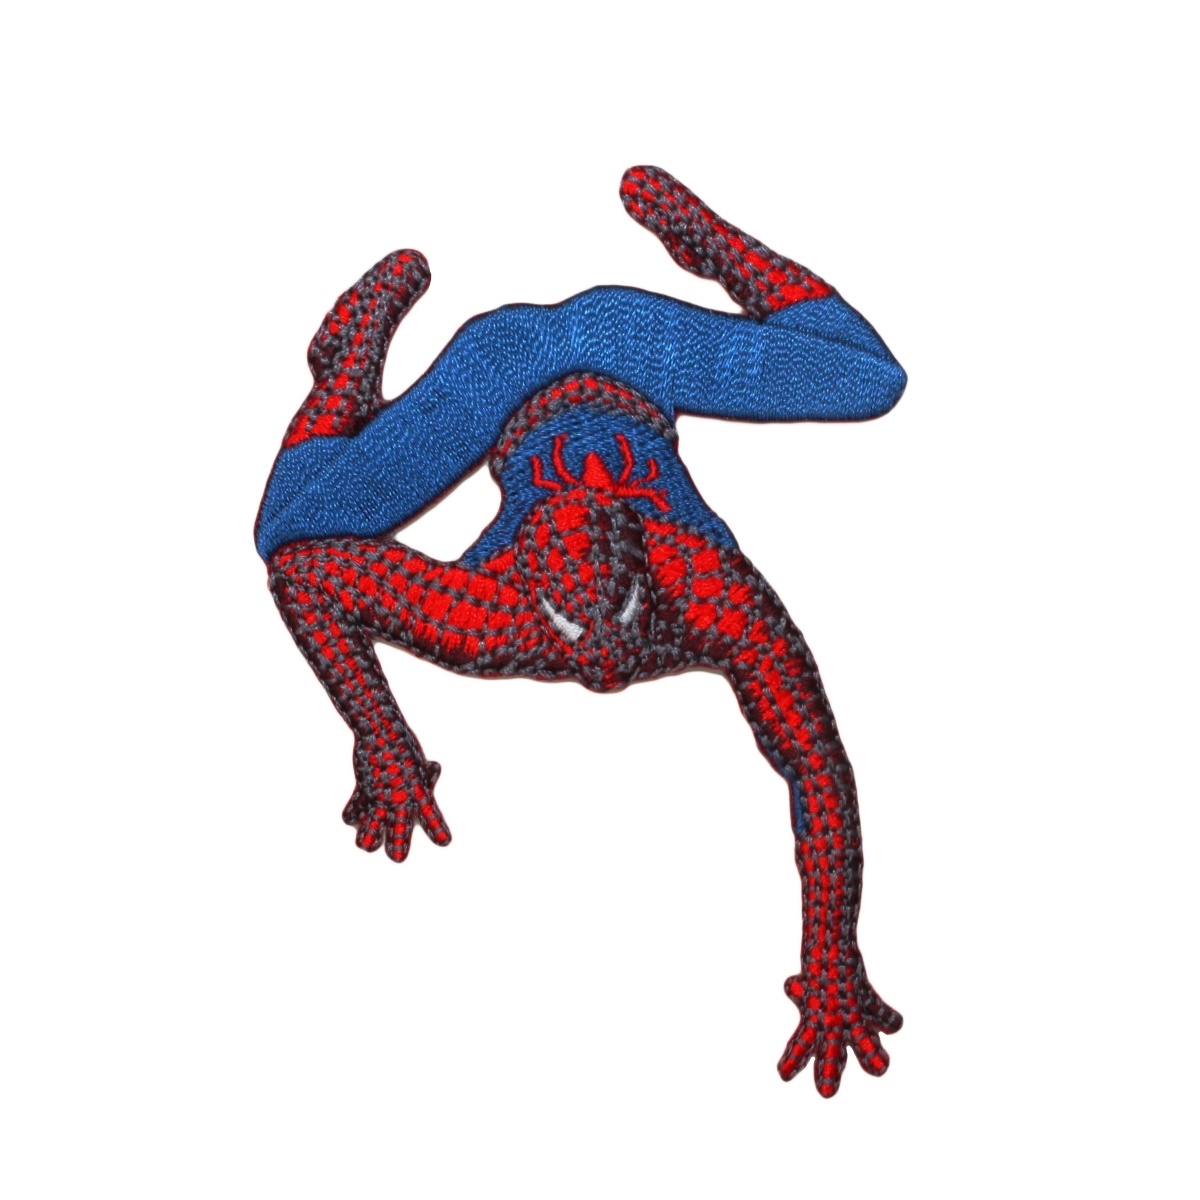 Spider-Man Wall Climb Patch Marvel Comics Avenger Superhero Fan Iron-On Applique